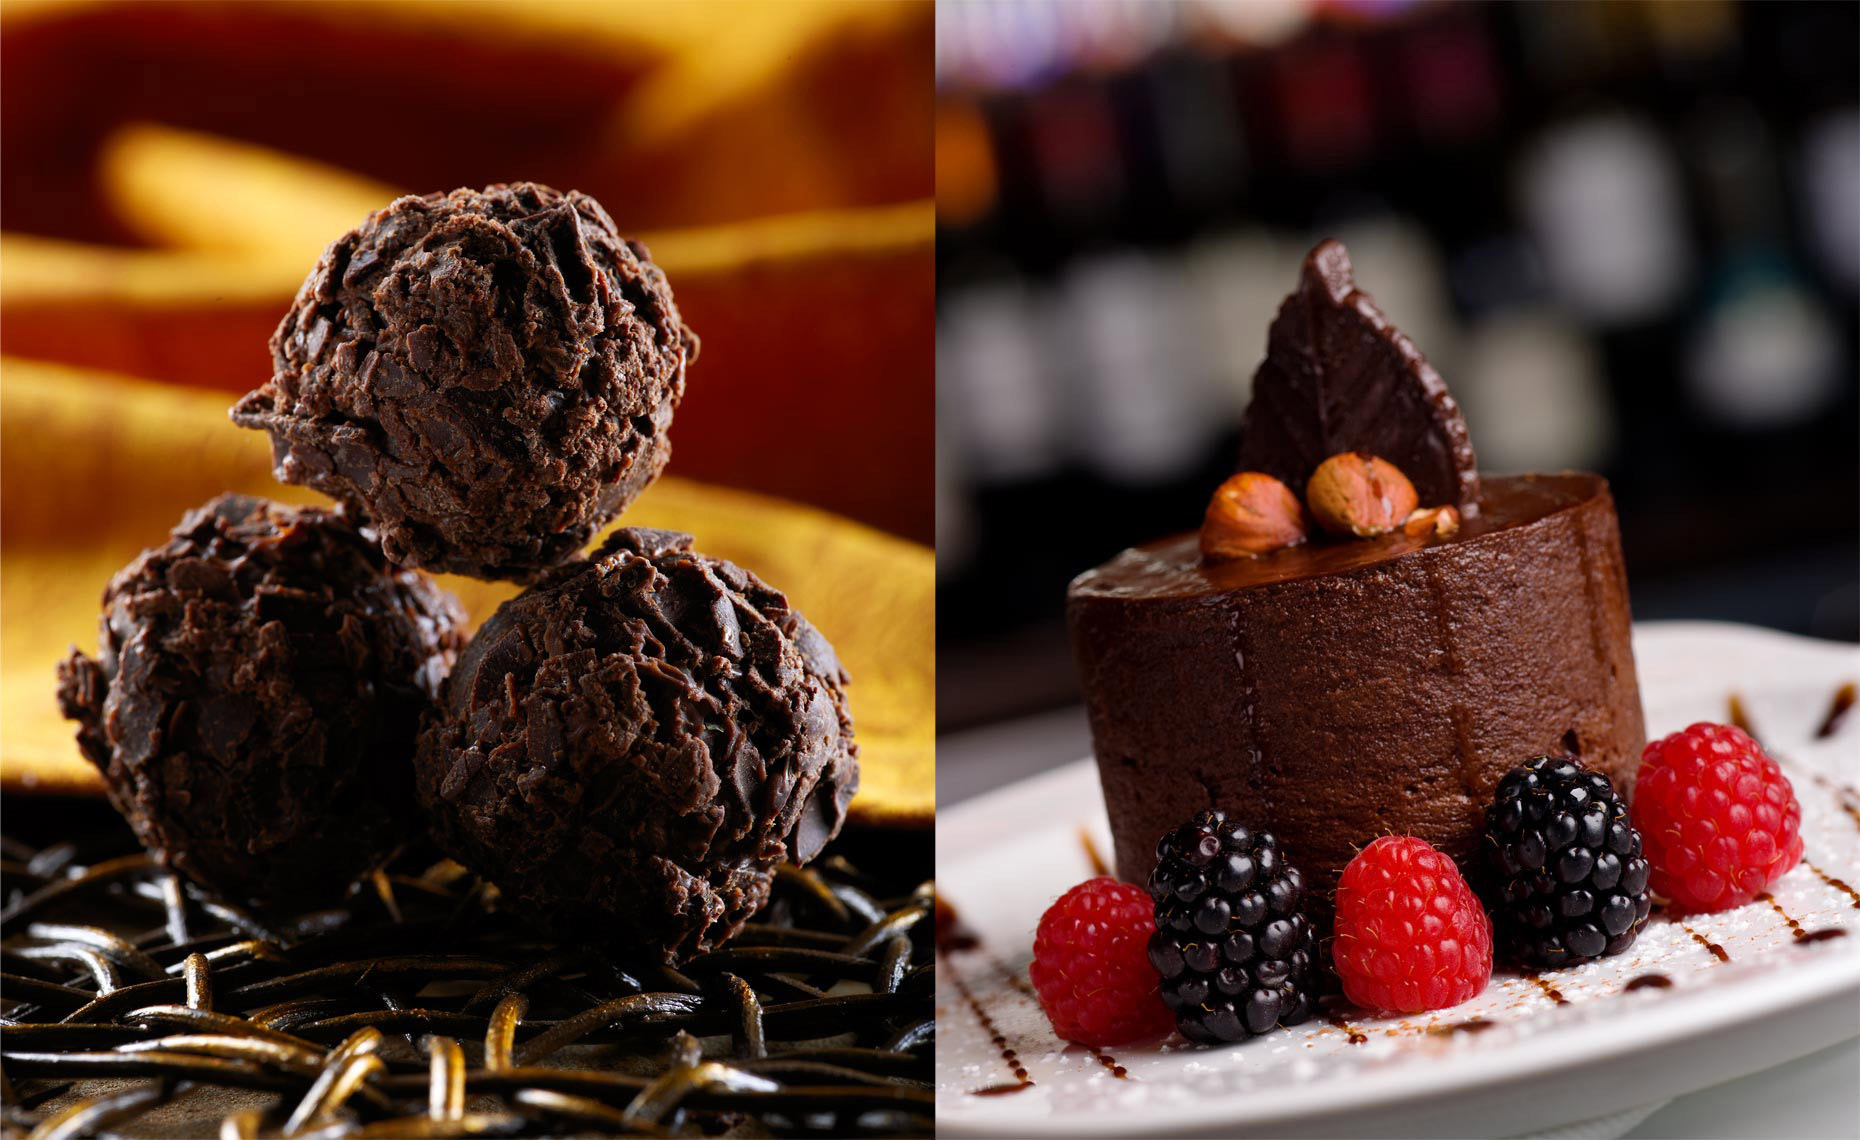 Dessert Photography | Chocolate Rum Balls & Dessert with Berriesjpg